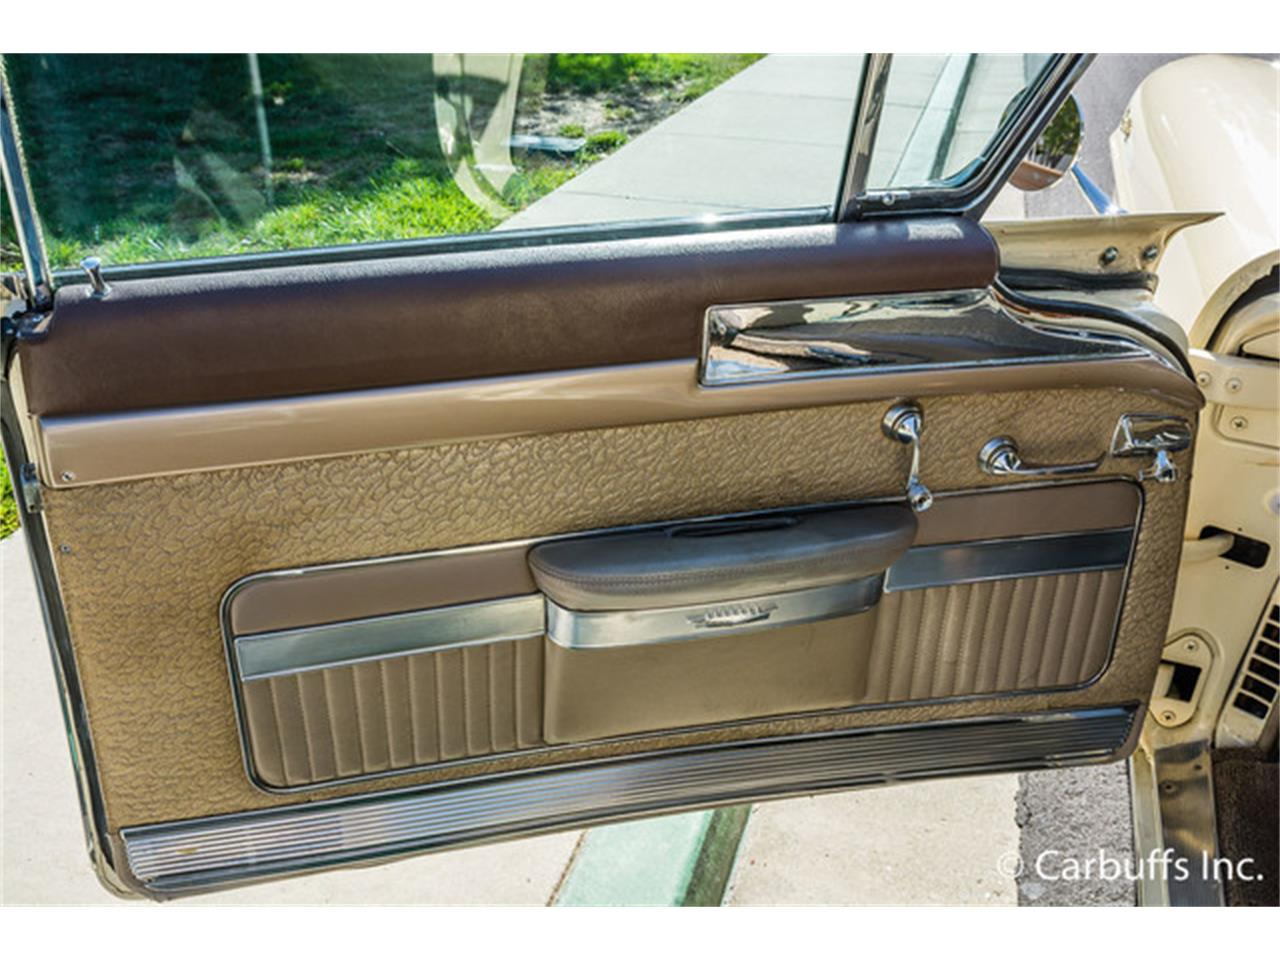 Large Picture of 1957 Cadillac Series 62 located in Concord California - LRZC